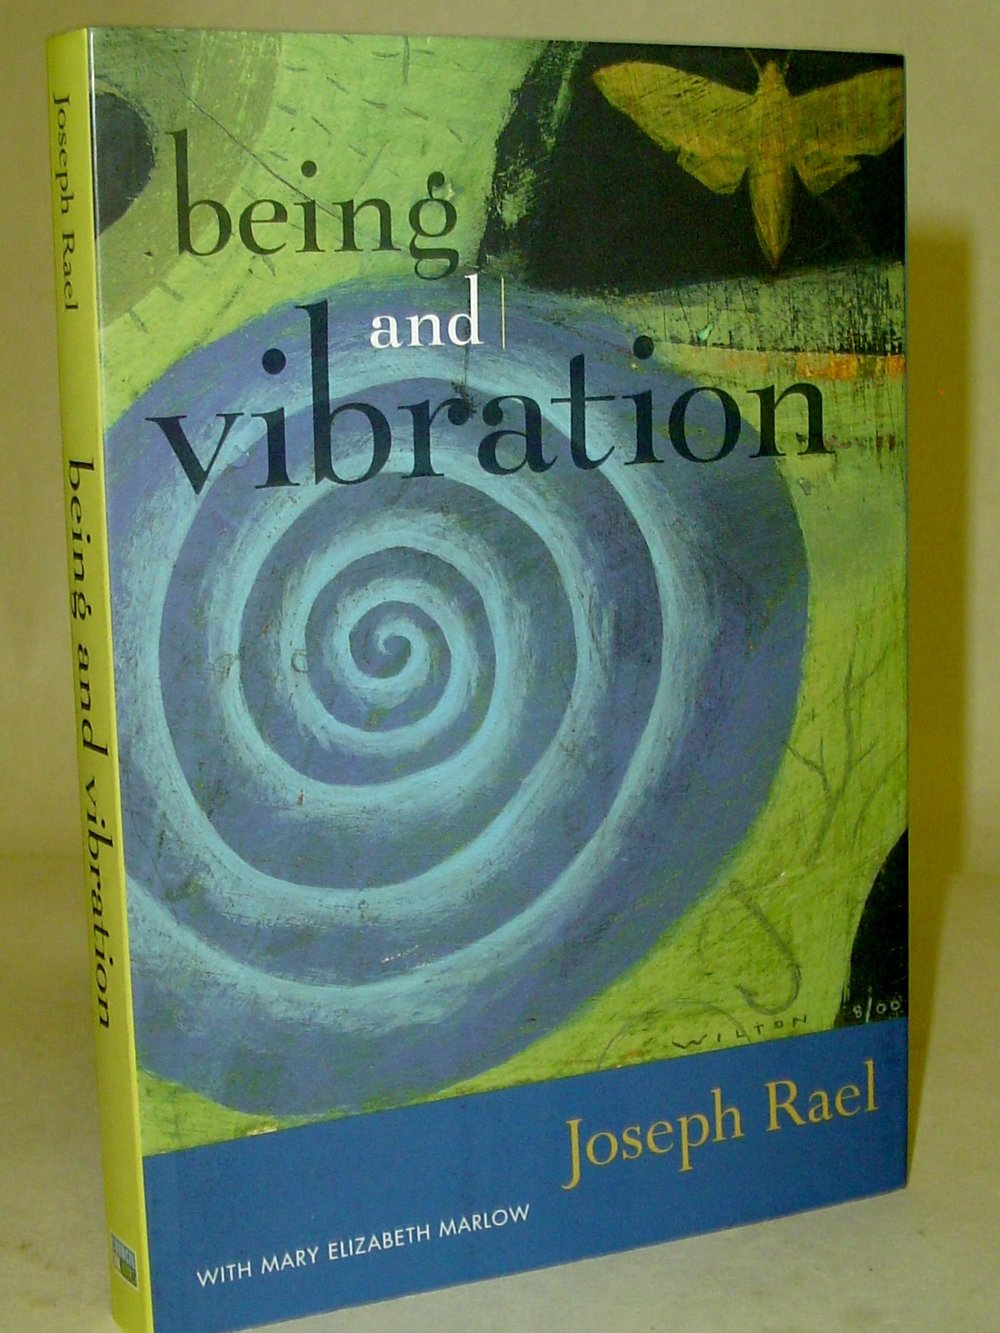 Being and Vibration  By Joseph Rael  $21  Rael encourages us to wake up from our field of limitations and enter a new world of possibilities by listening the inner vibrations in ourselves and our universe. This book also includes 33 new works of art by Rael.   Read More on eBay